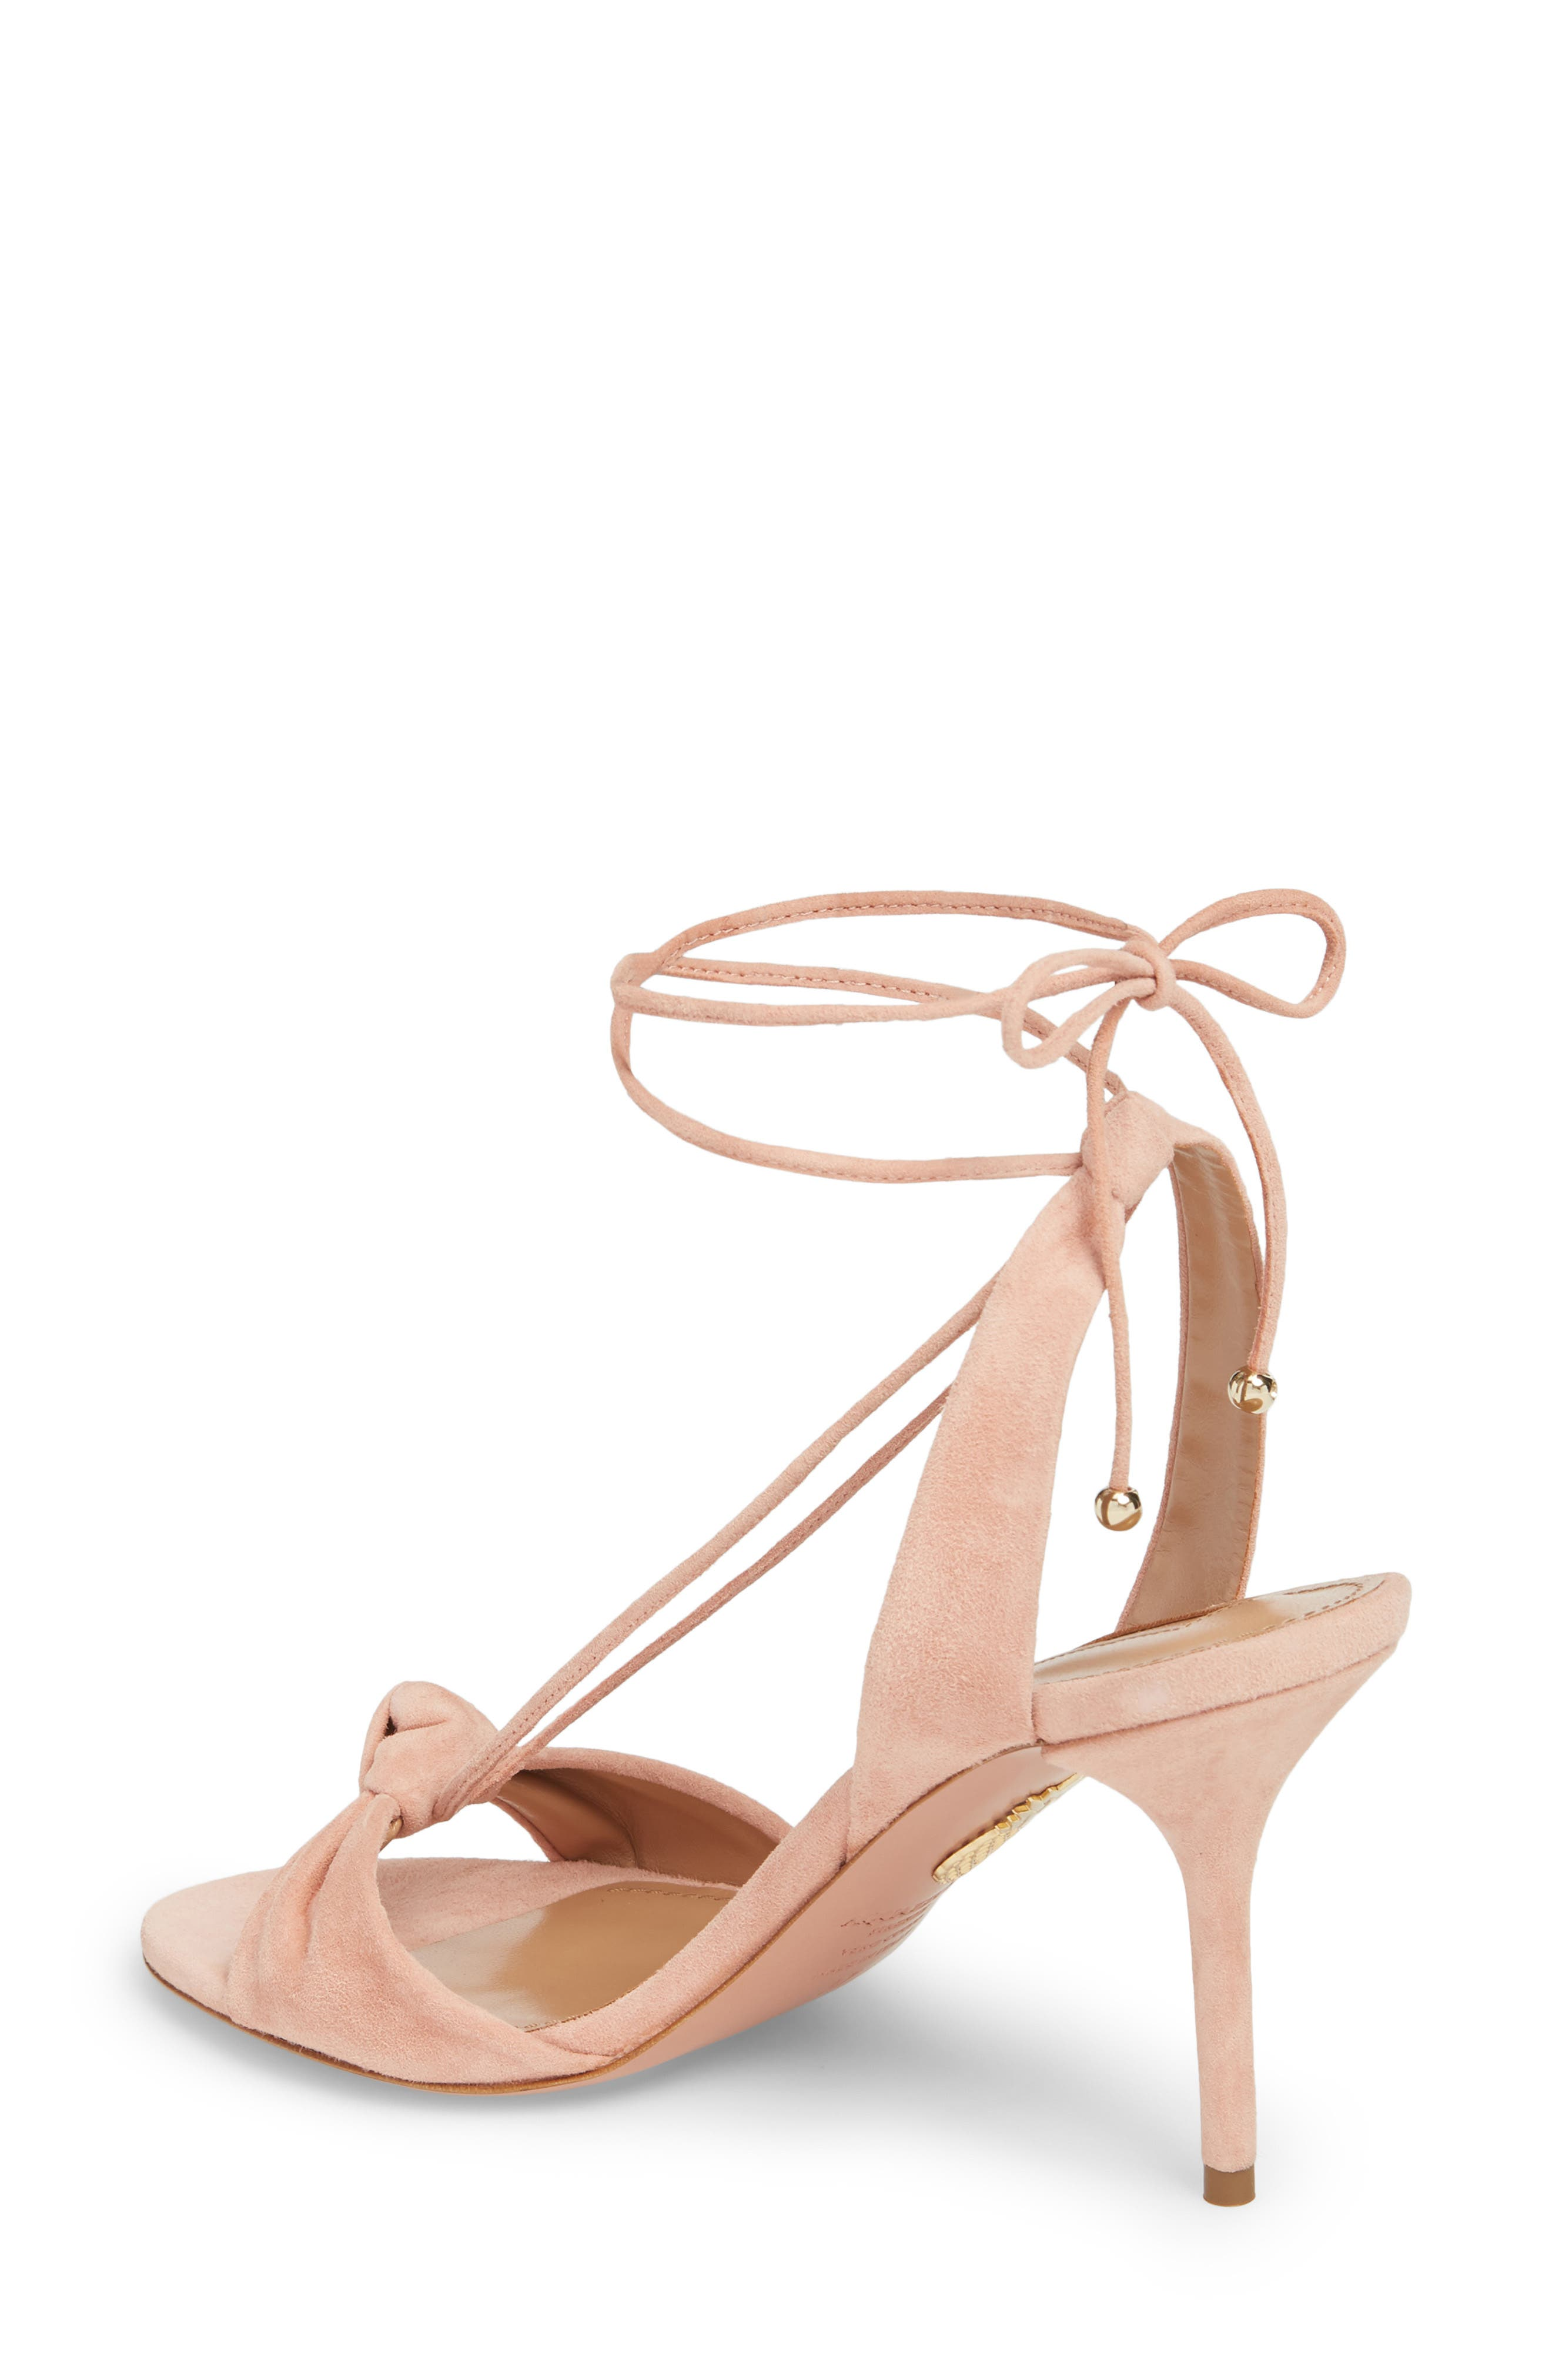 Virginie Lace-Up Sandal,                             Alternate thumbnail 2, color,                             French Rose